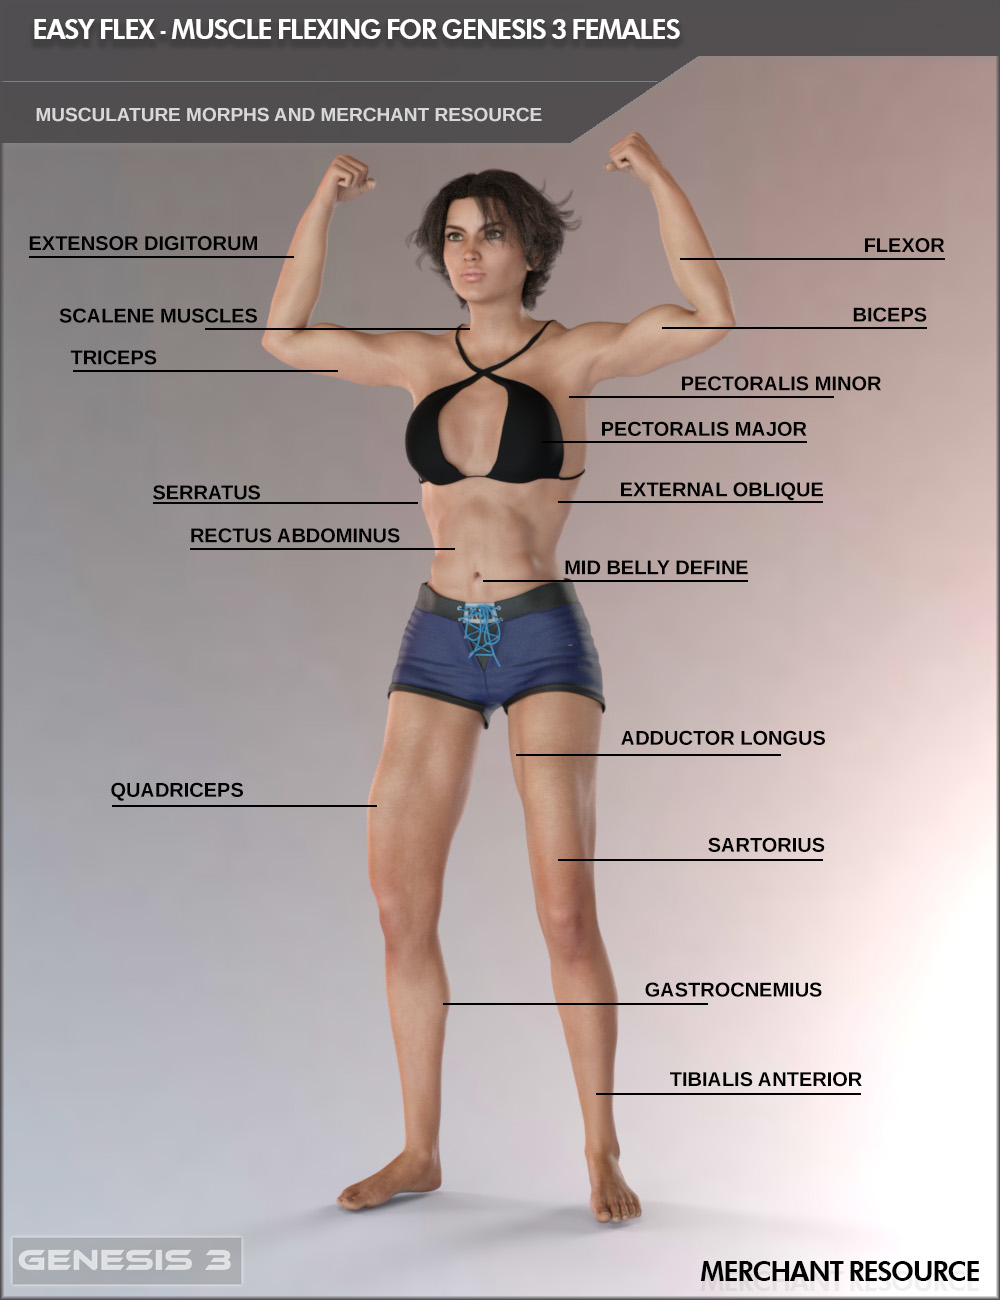 Easy Flex - Muscle Flexing Control for Genesis 3 Females and Merchant Resource